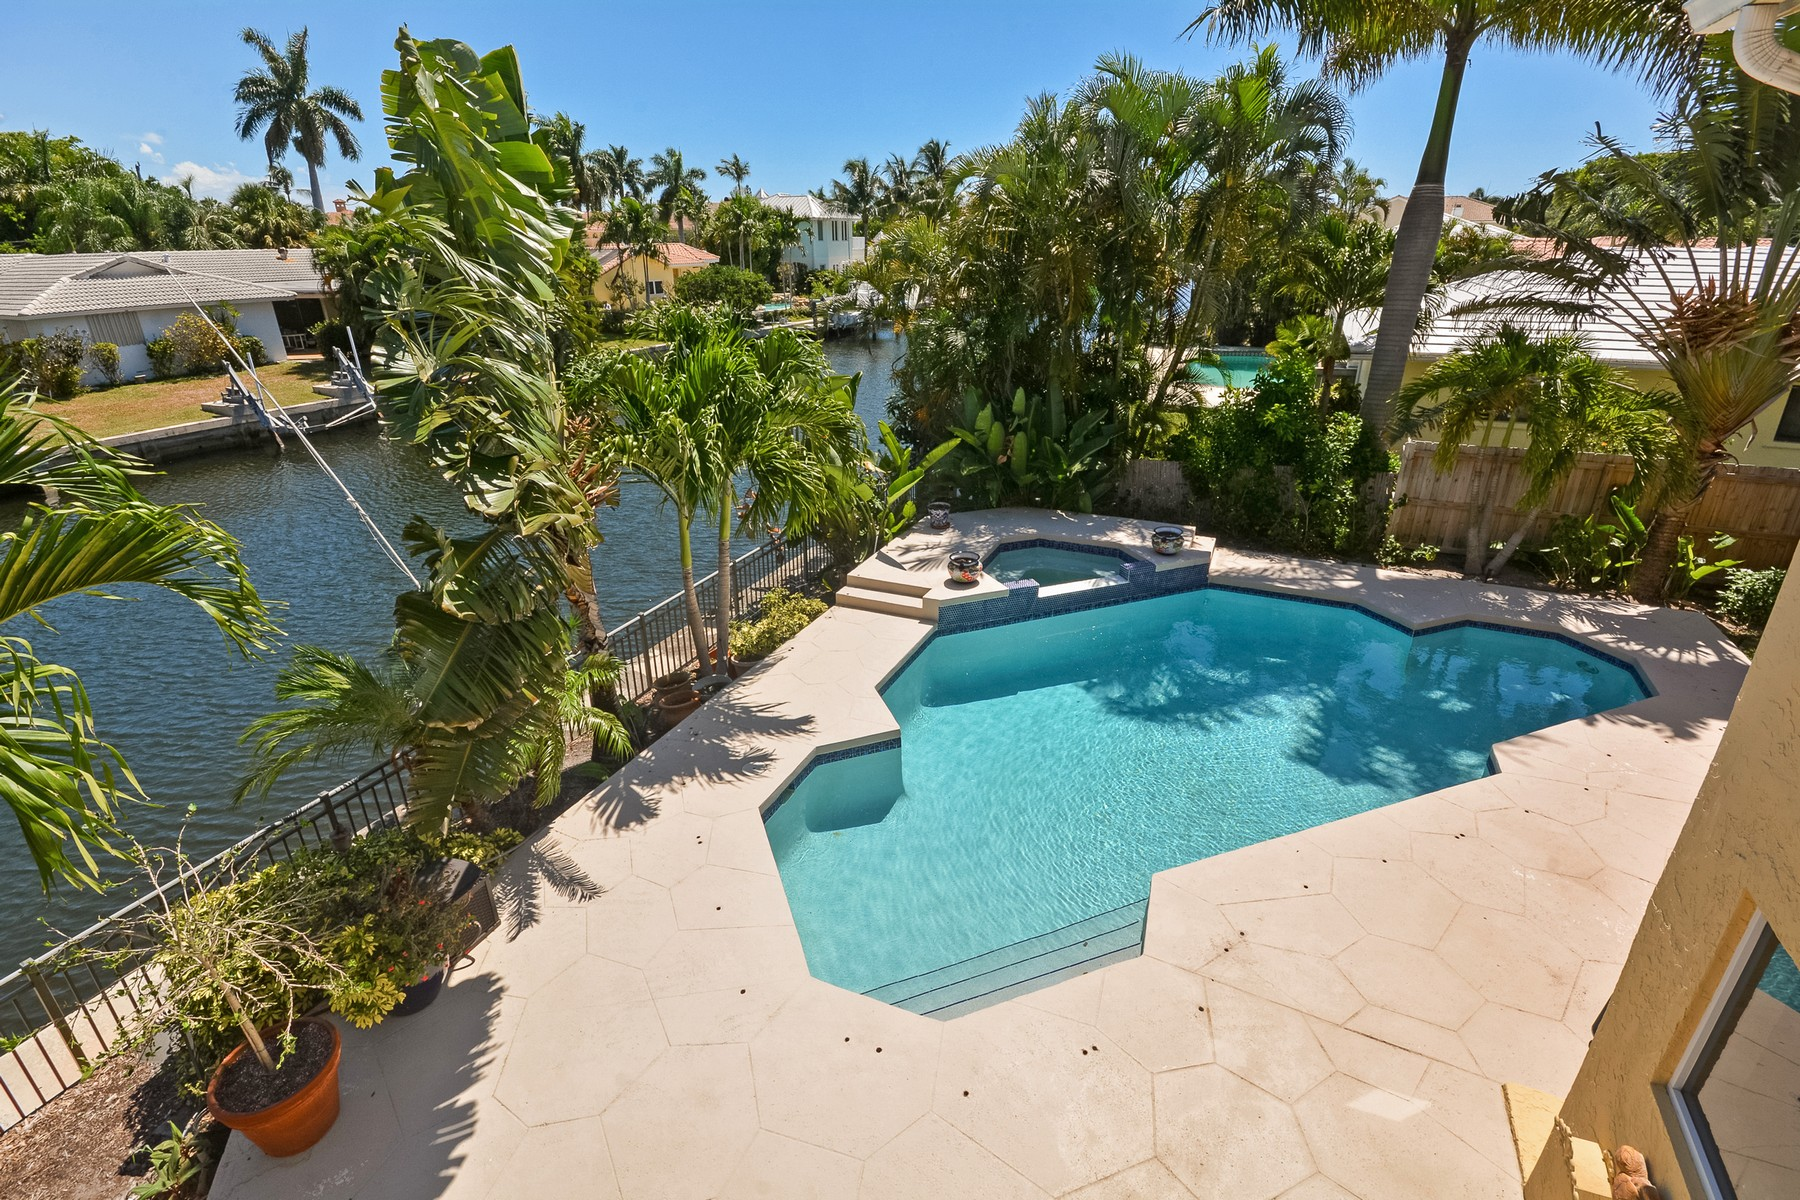 Property For Sale at 923 Dogwood Dr , Delray Beach, FL 33483